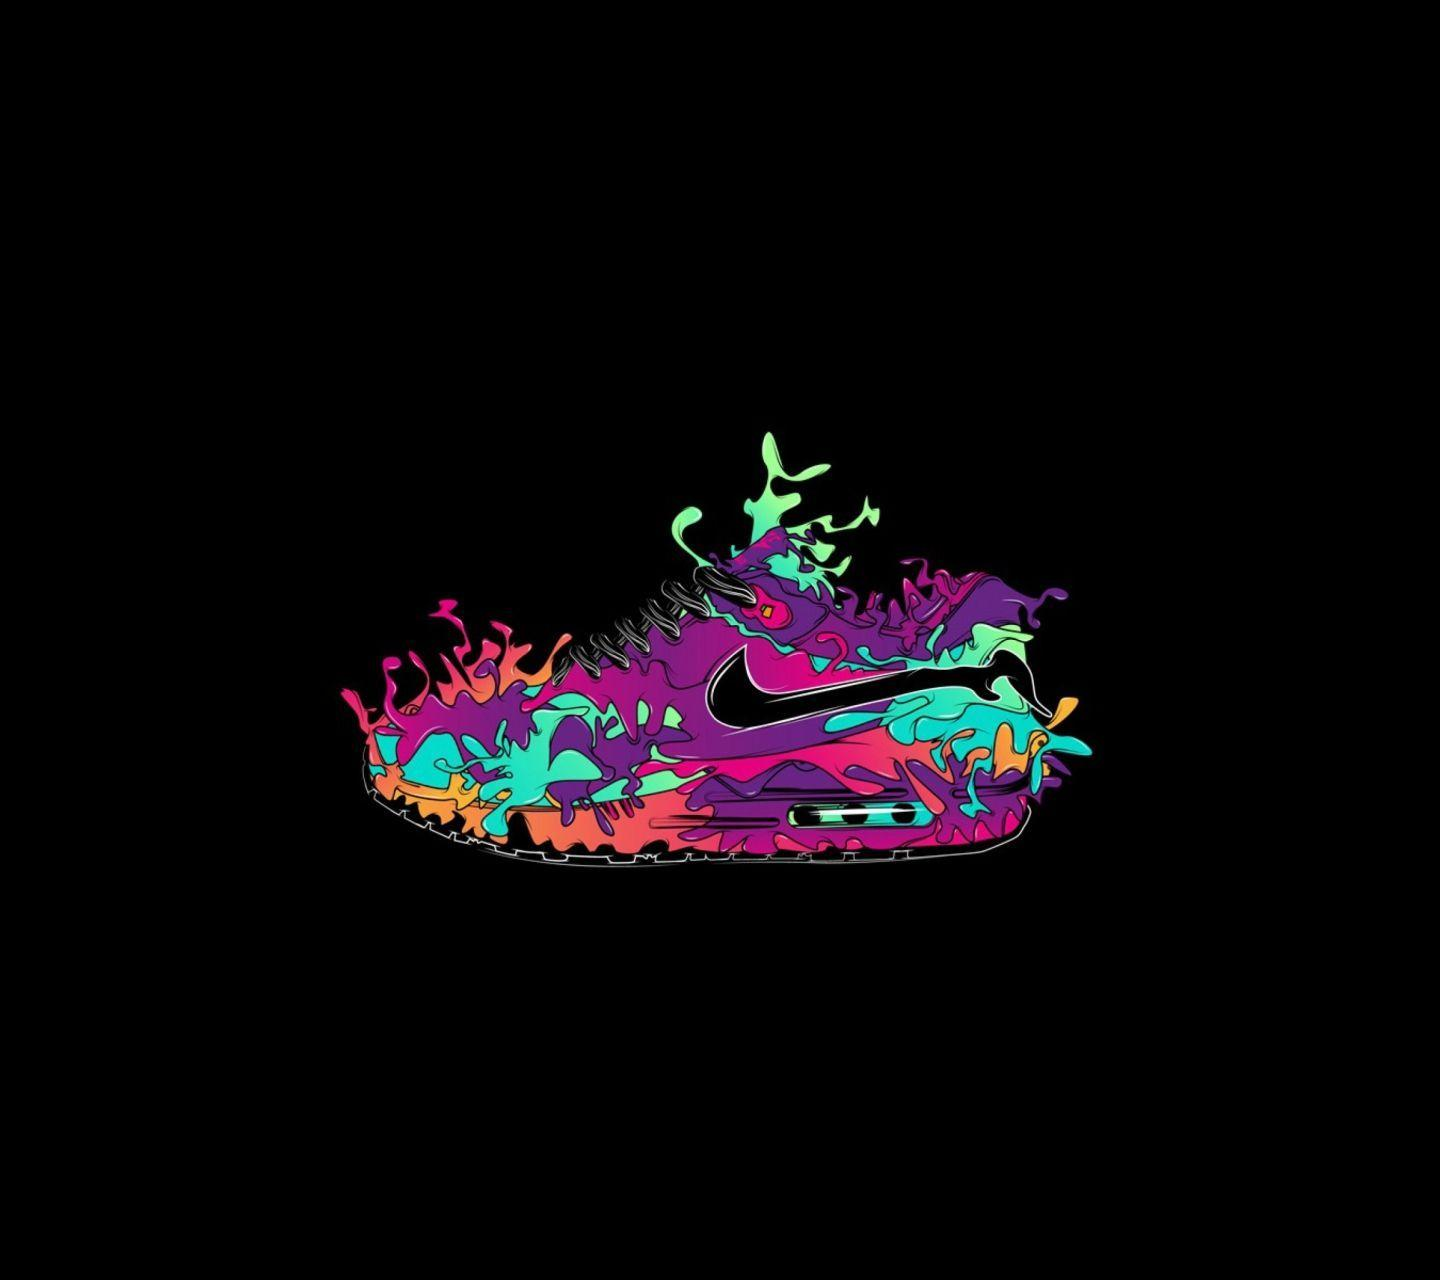 Nike Galaxy Wallpapers